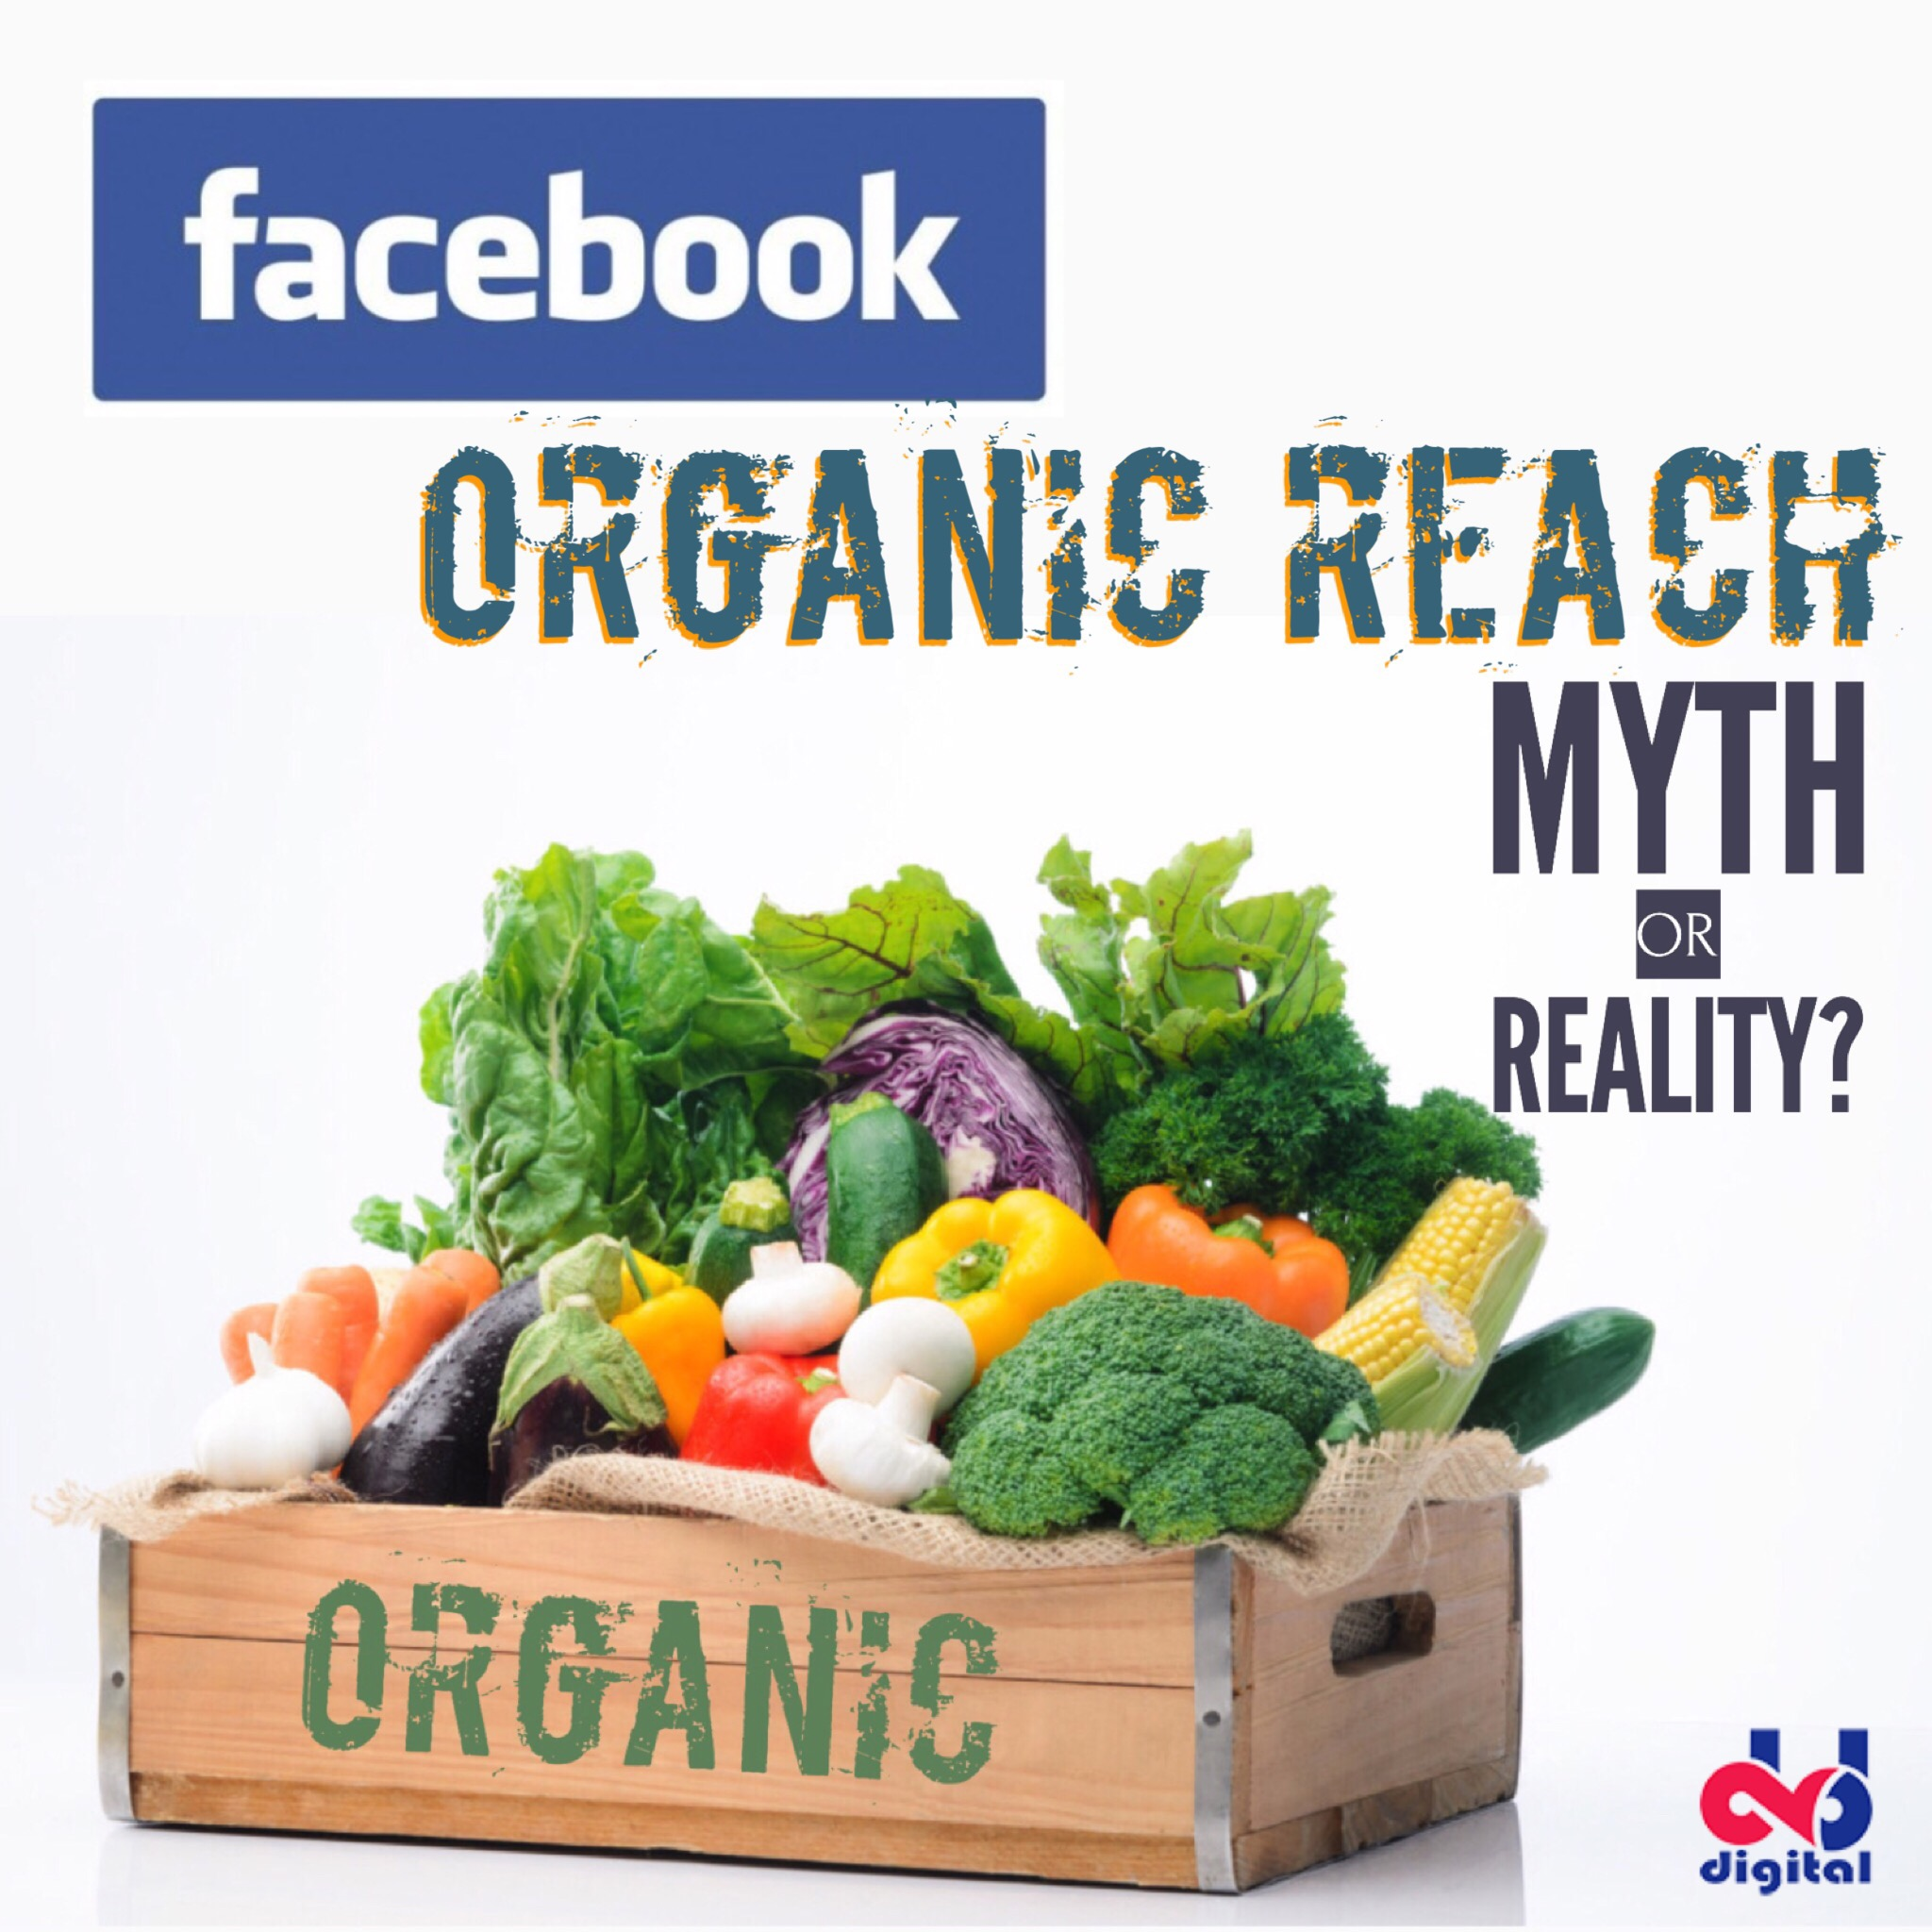 Facebook organic search: myth or reality?